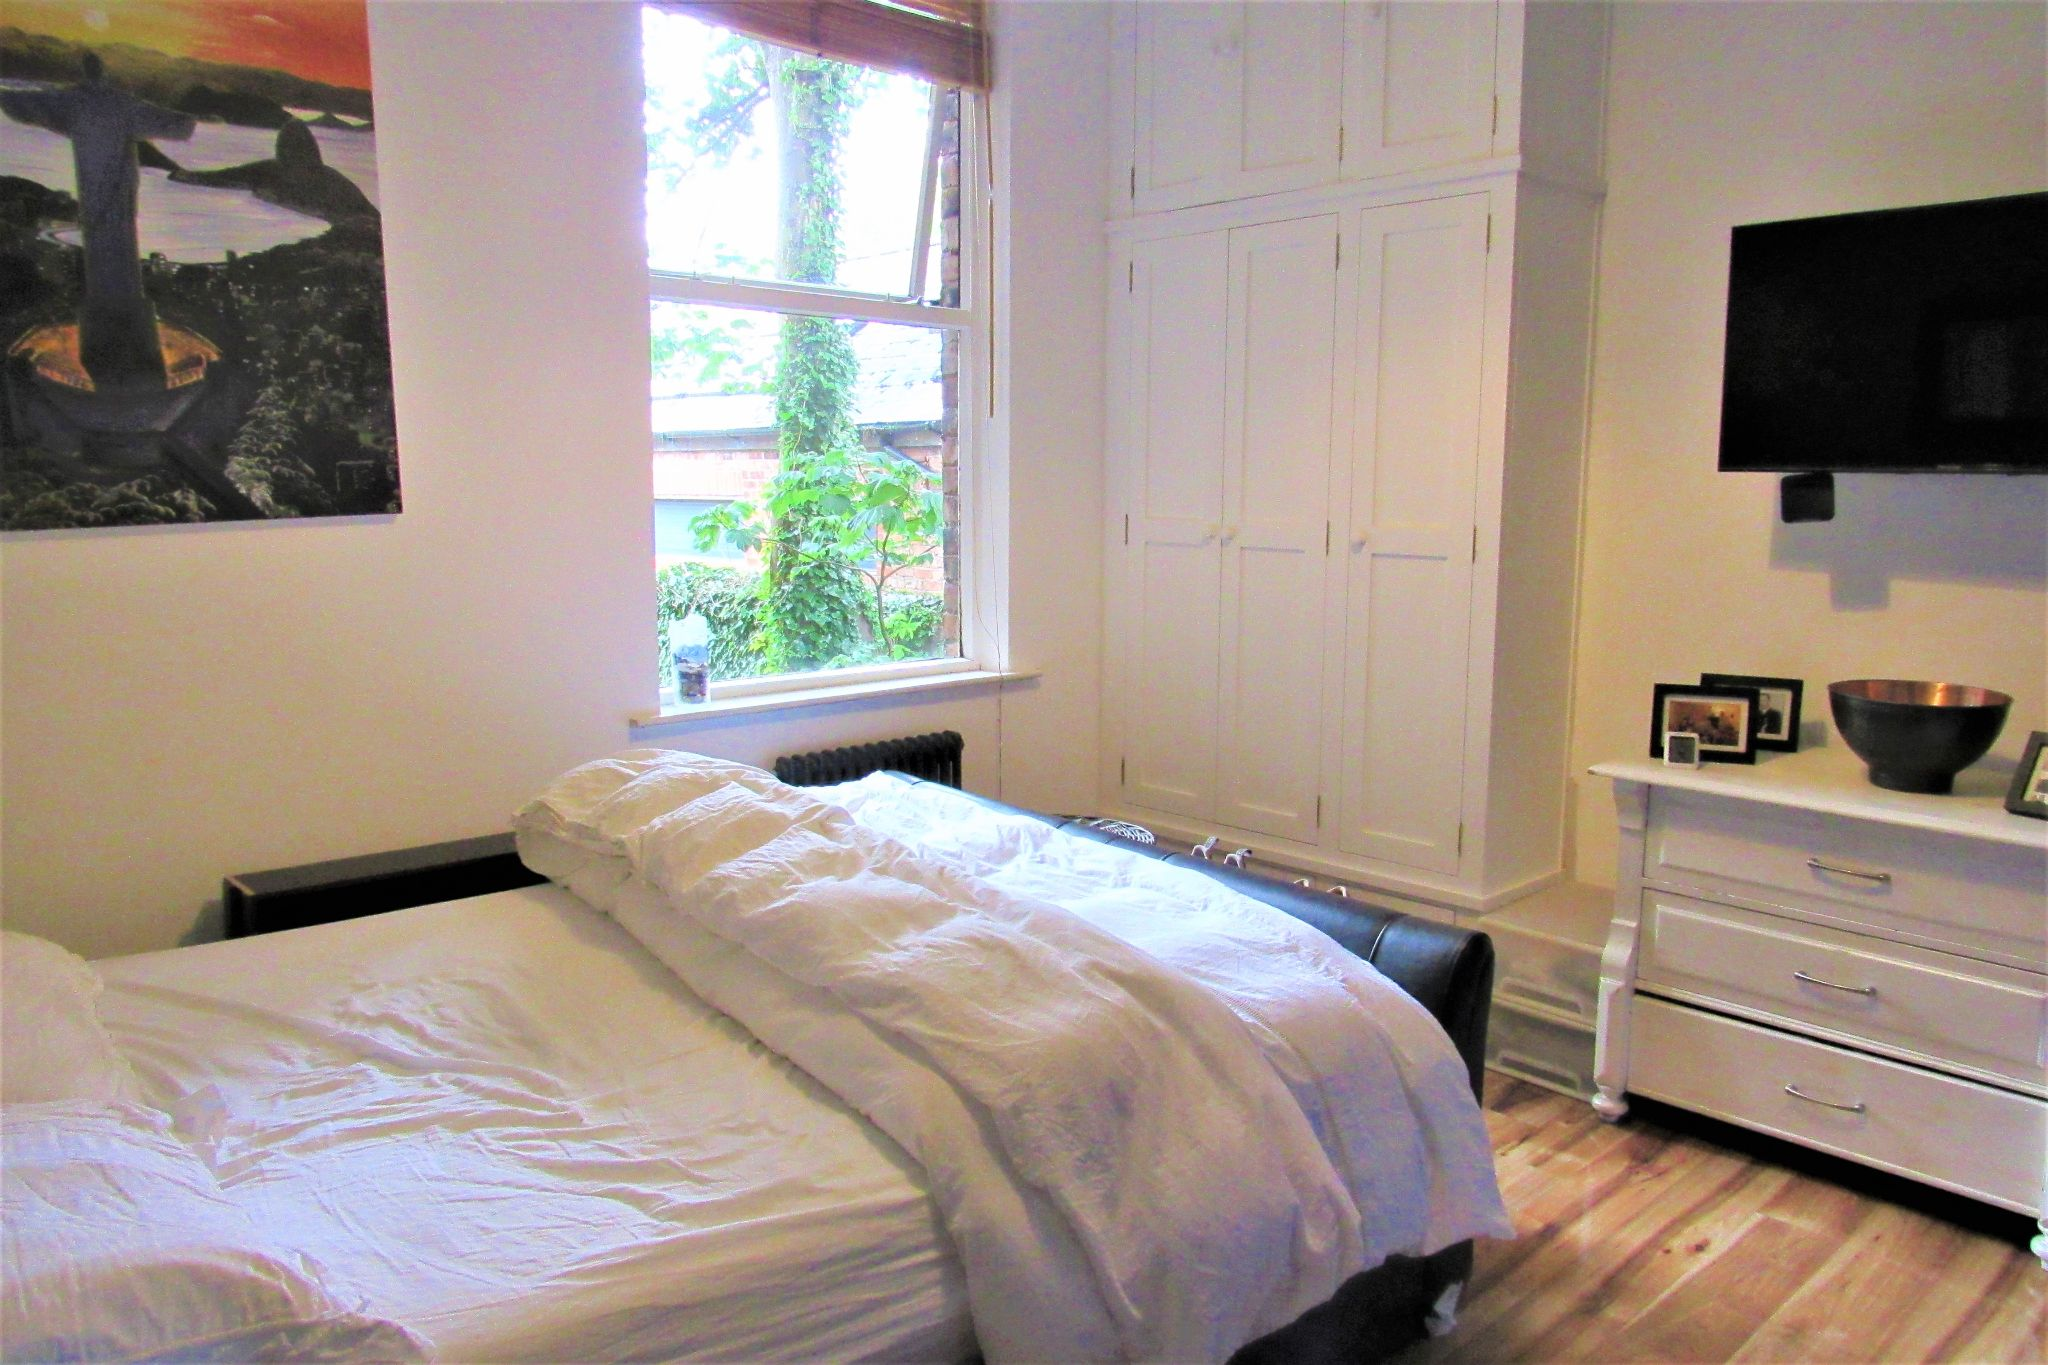 1 bedroom apartment flat/apartment For Sale in Didsbury - Photograph 6.